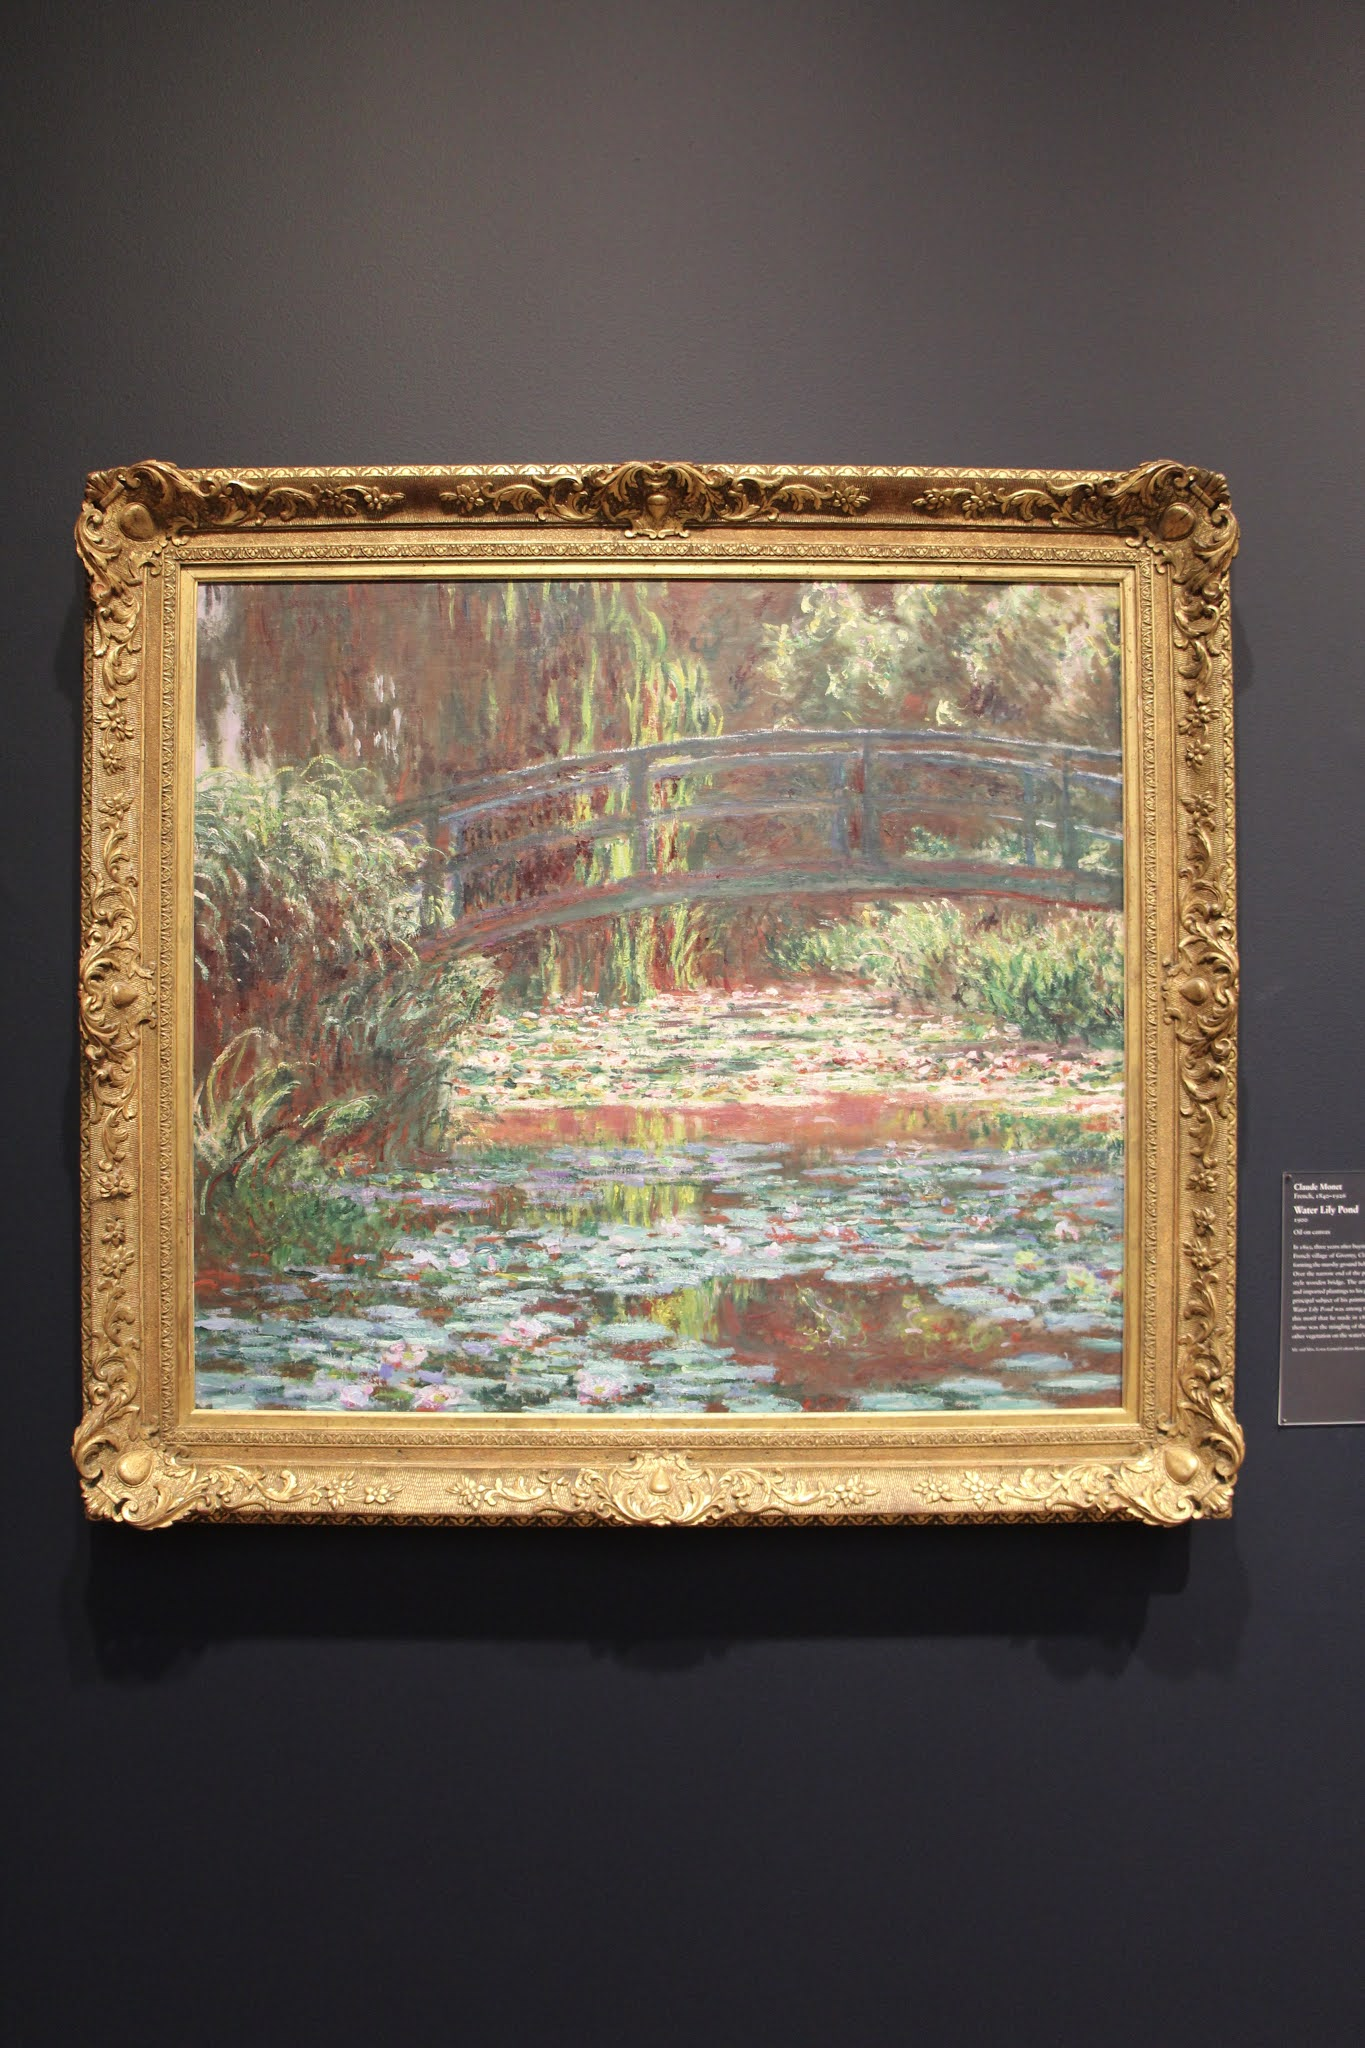 giverny, painting, art, art institute chicago, monet, impressionism